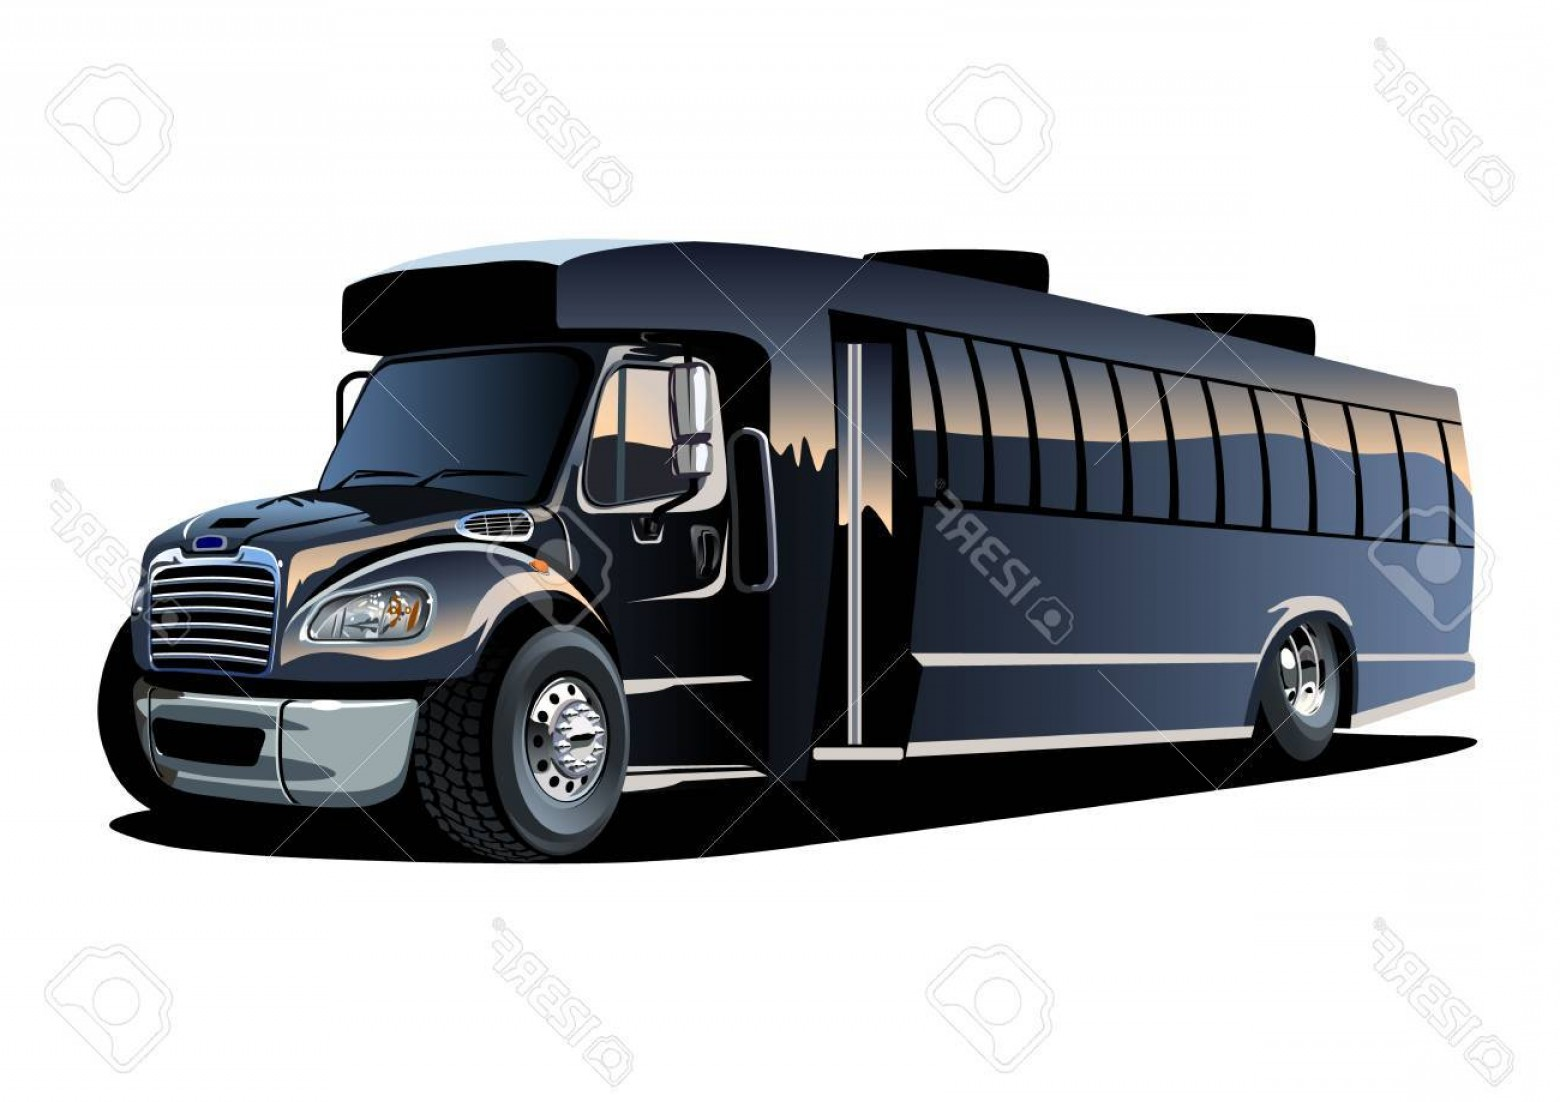 Pic Bus Vector Format: Photostock Vector Cartoon Shuttle Bus Available Eps Vector Format Separated By Groups And Layers